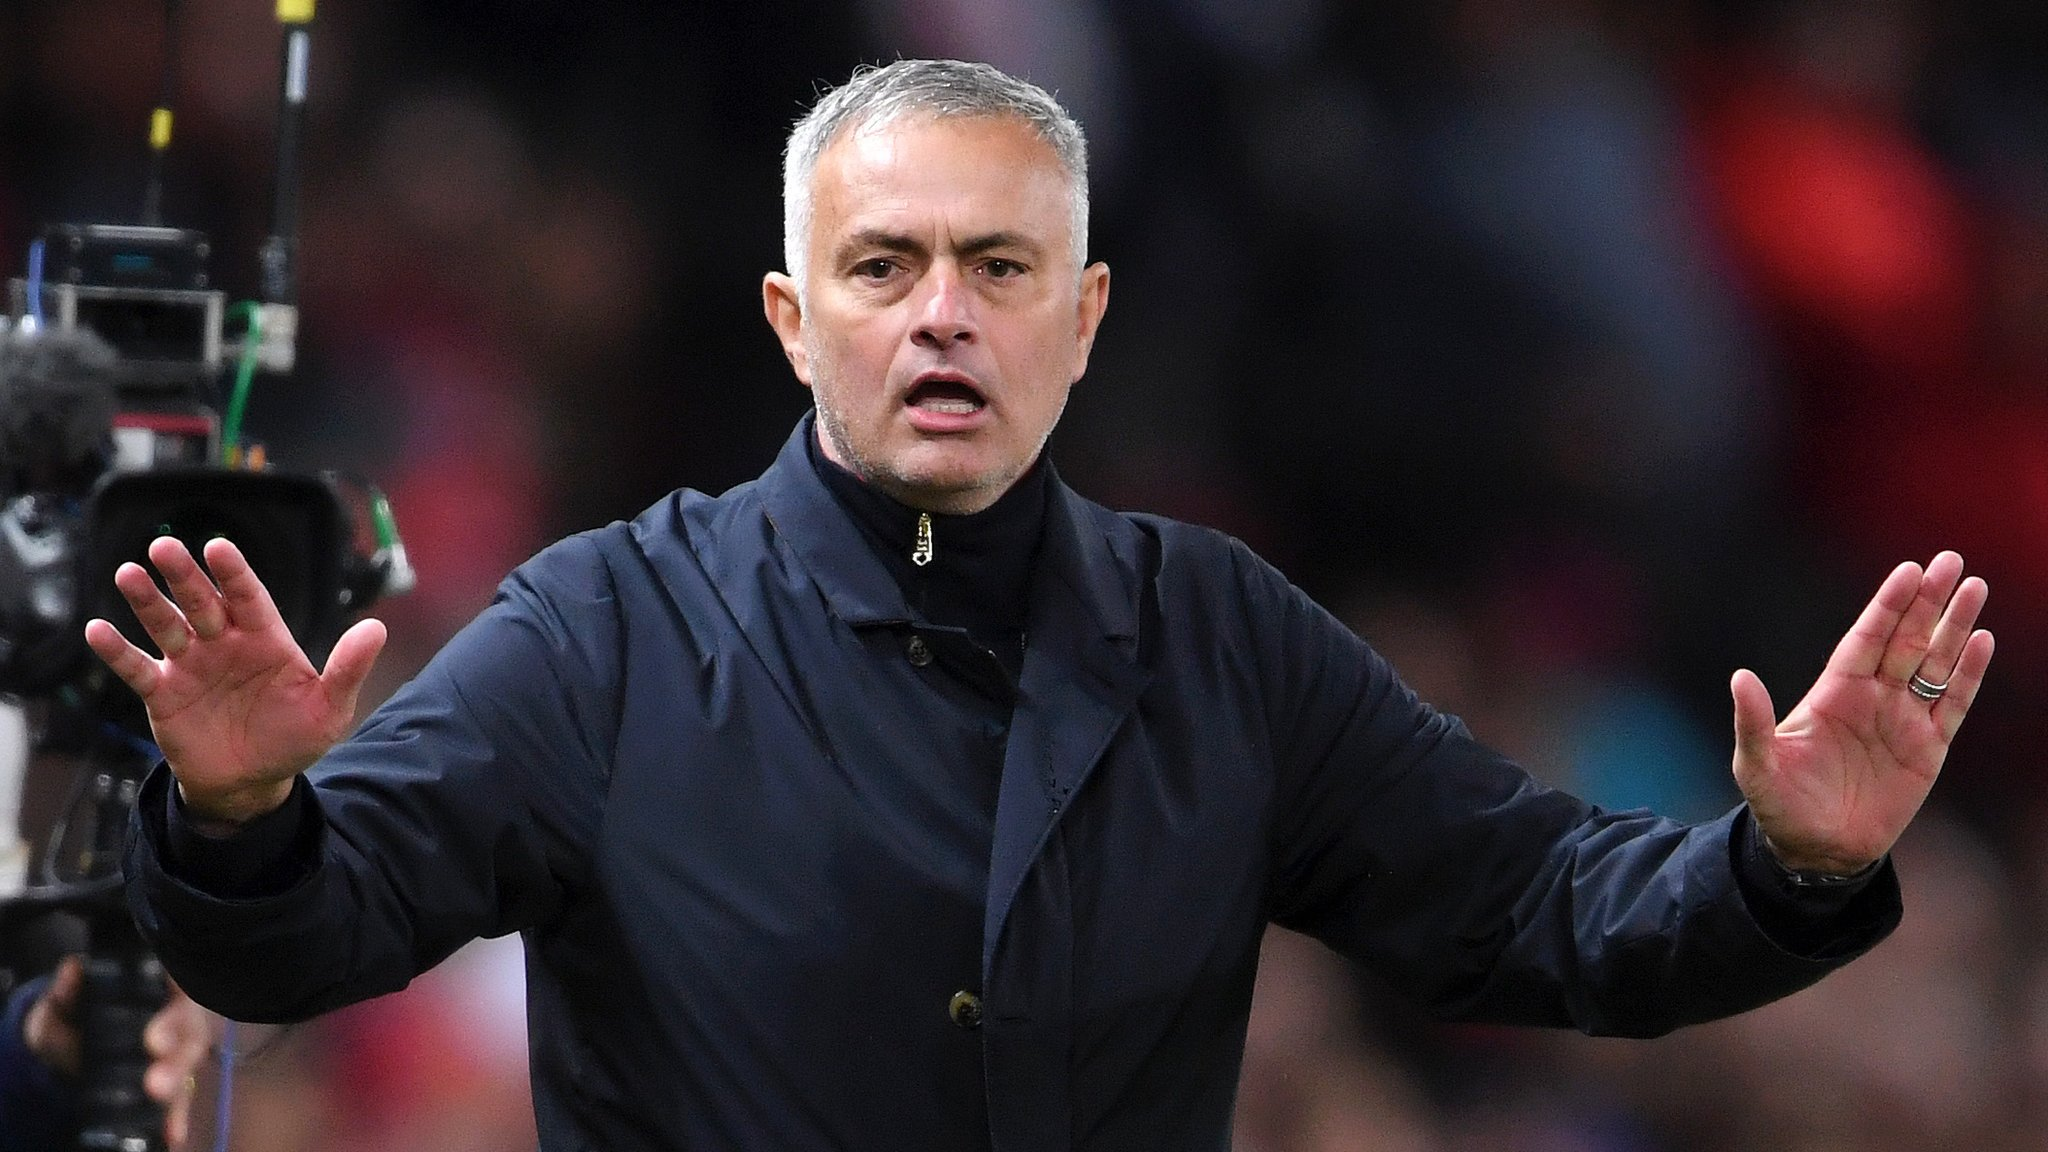 Jose Mourinho: Would sacking Man Utd manager be justified?